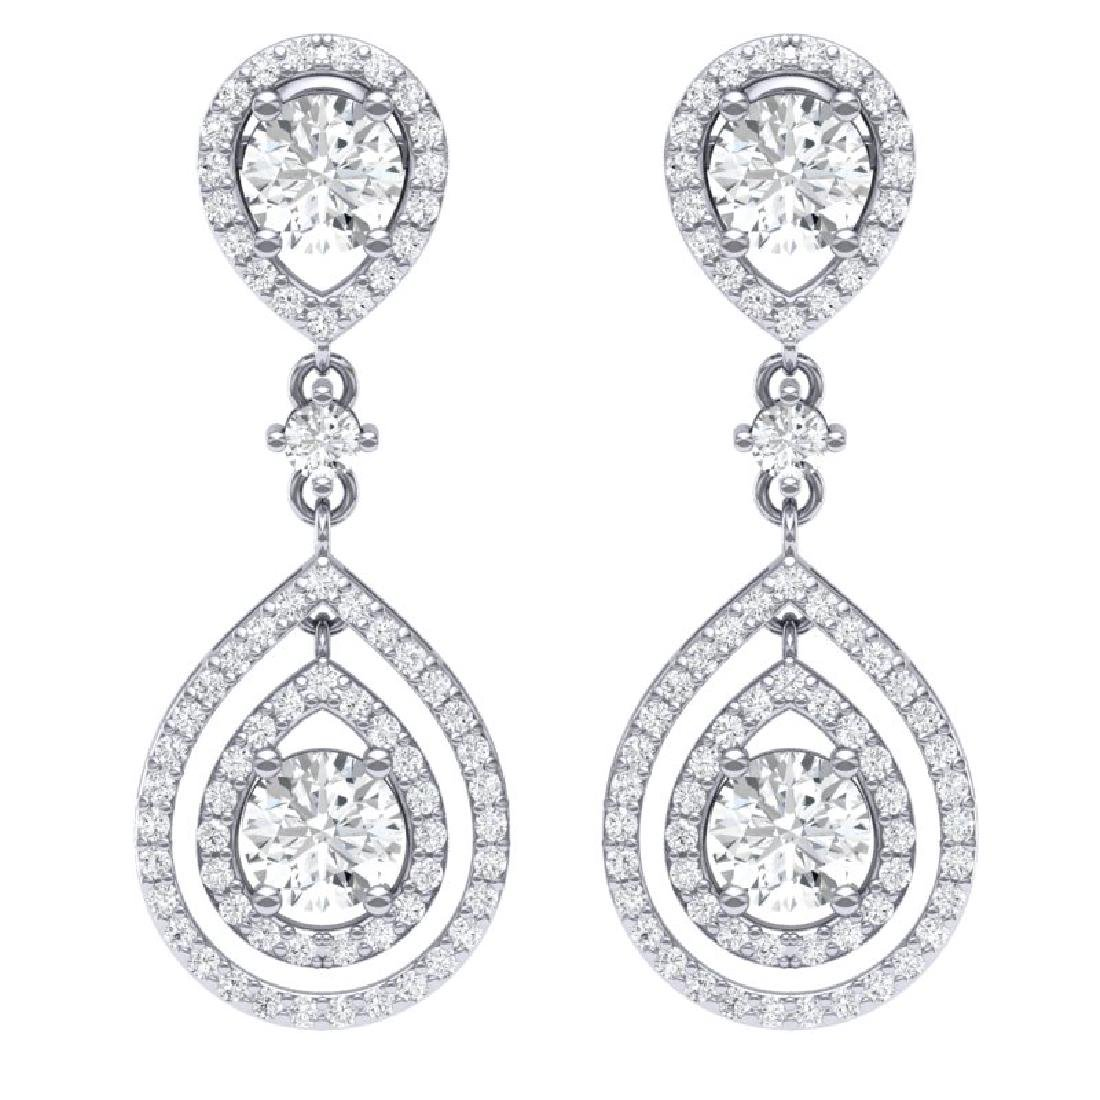 3.53 CTW Royalty Designer VS/SI Diamond Earrings 18K